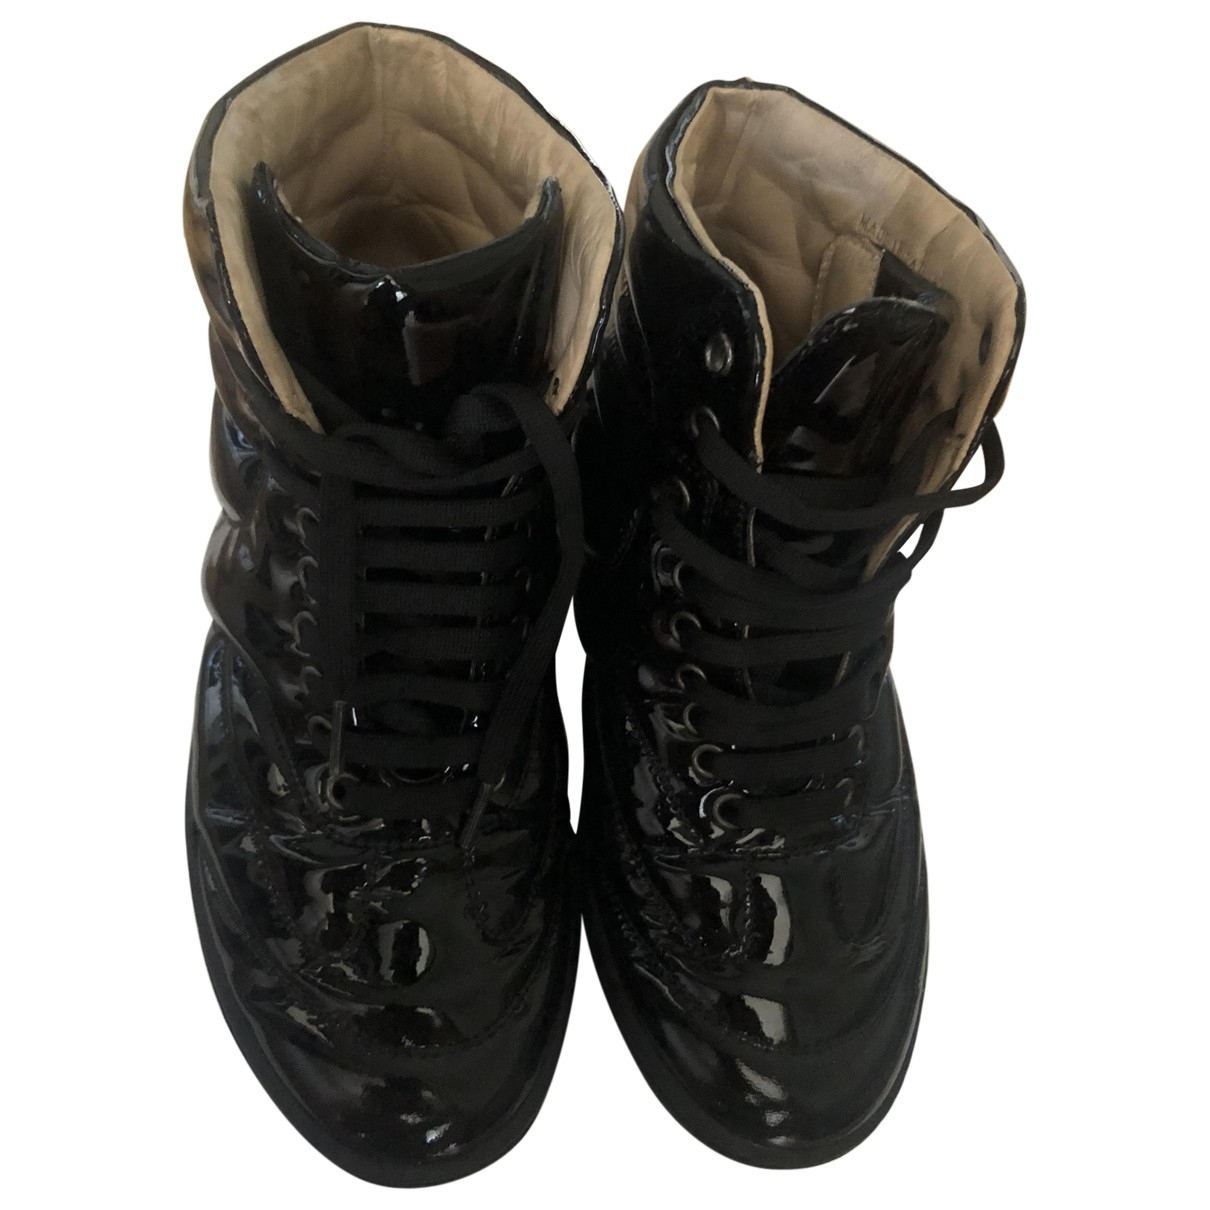 Mm6 \N Black Patent leather Boots for Women 36 EU